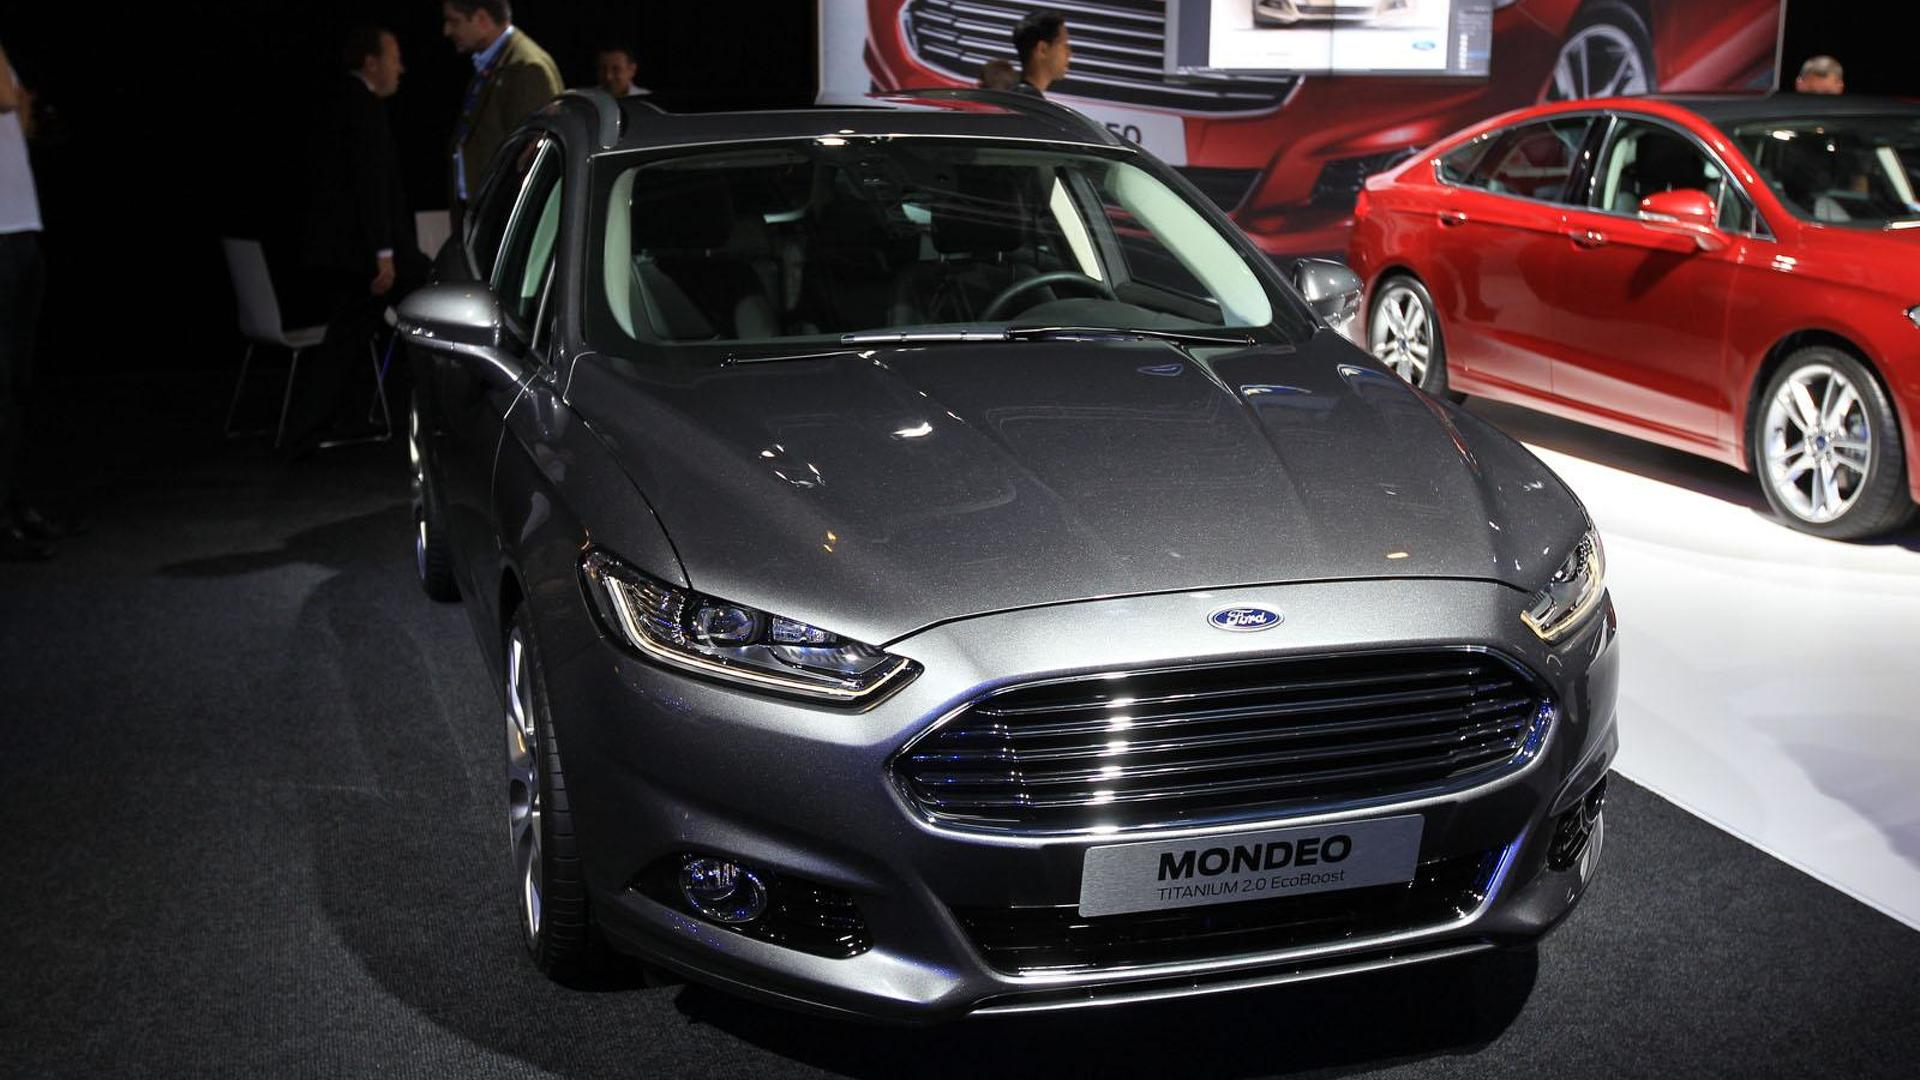 2013 Ford Mondeo rolls into Paris